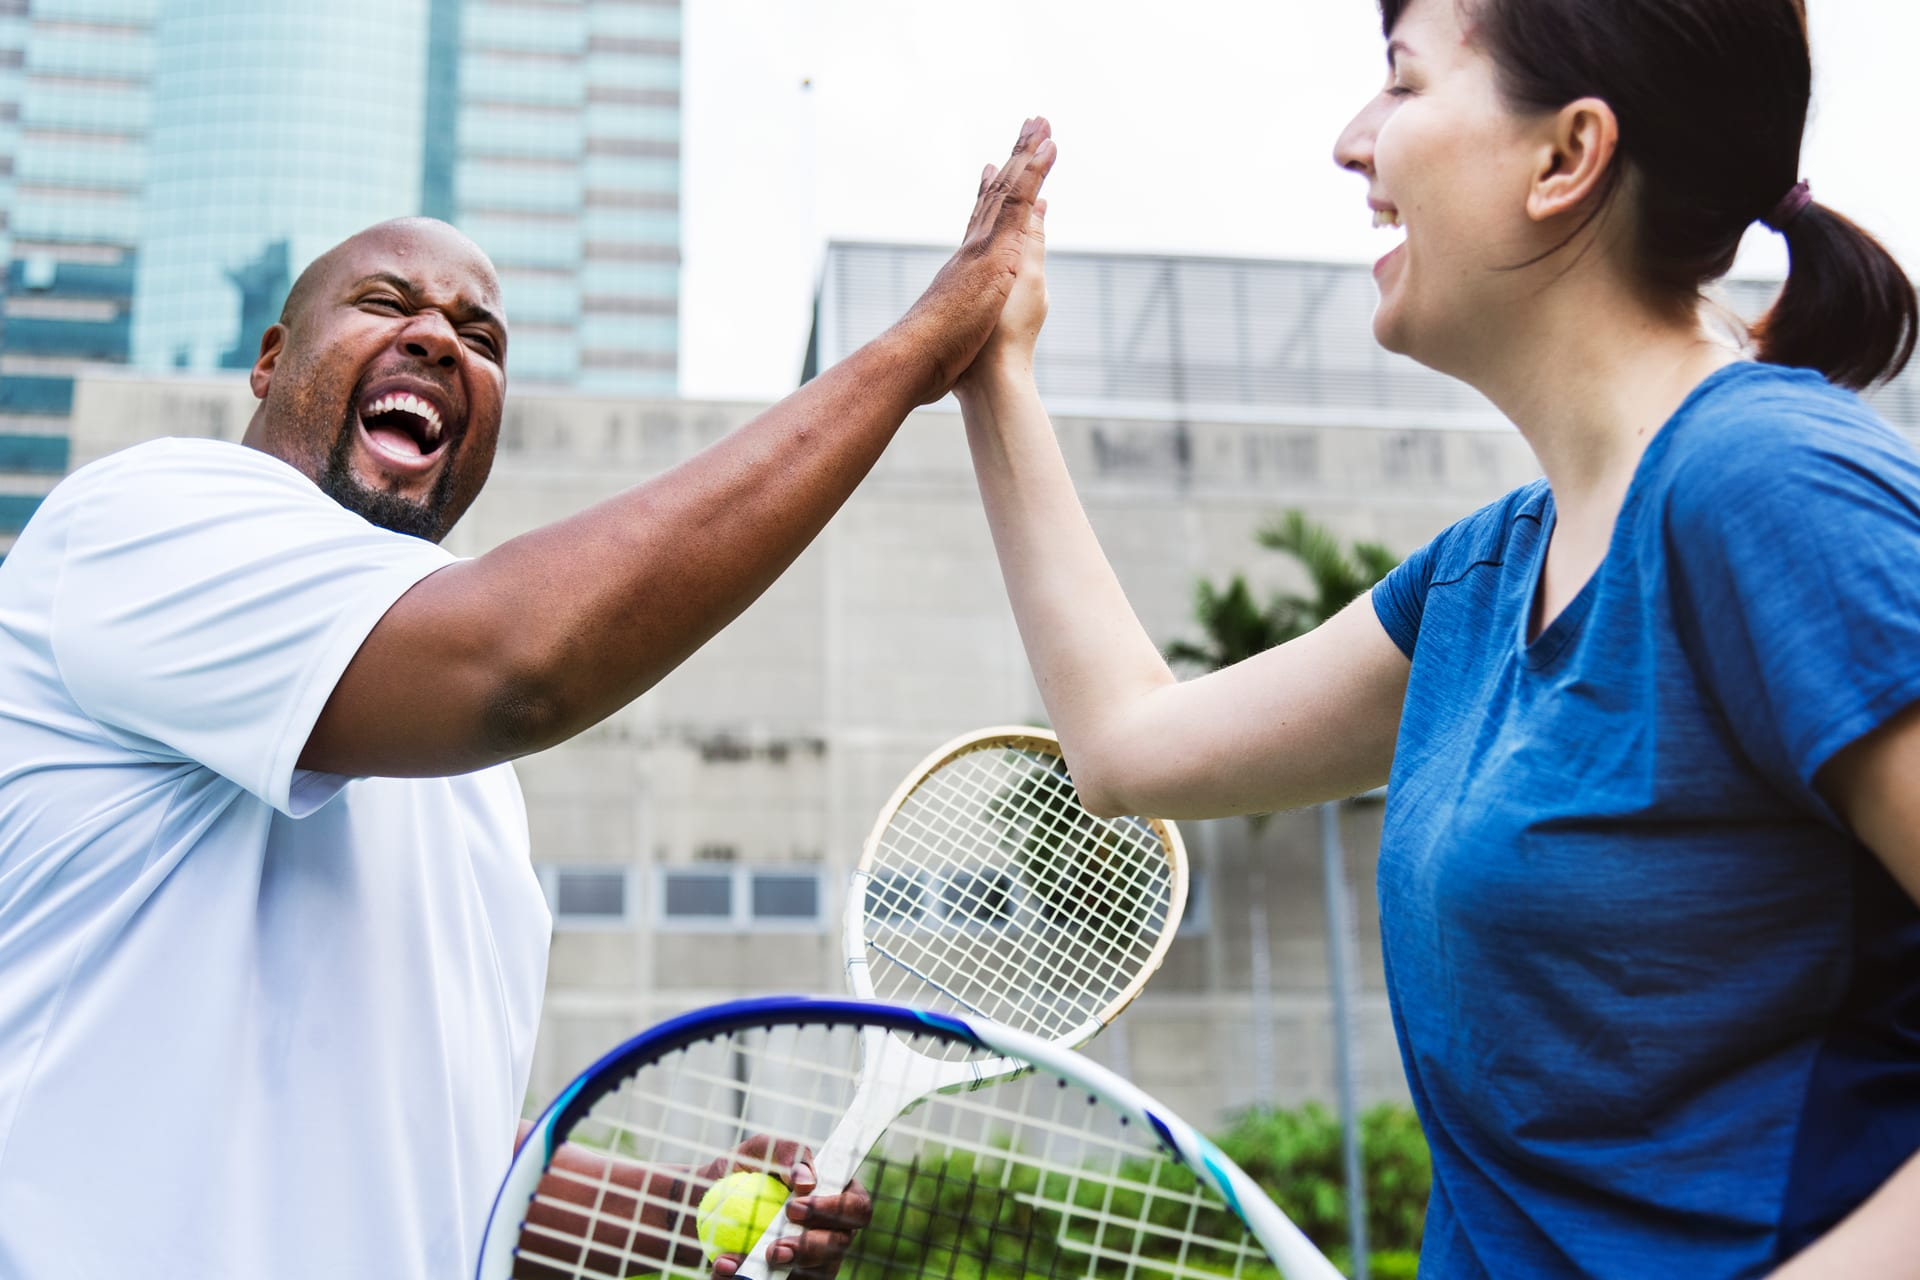 Hit your small business marketing goals like this couple hit that tennis score!